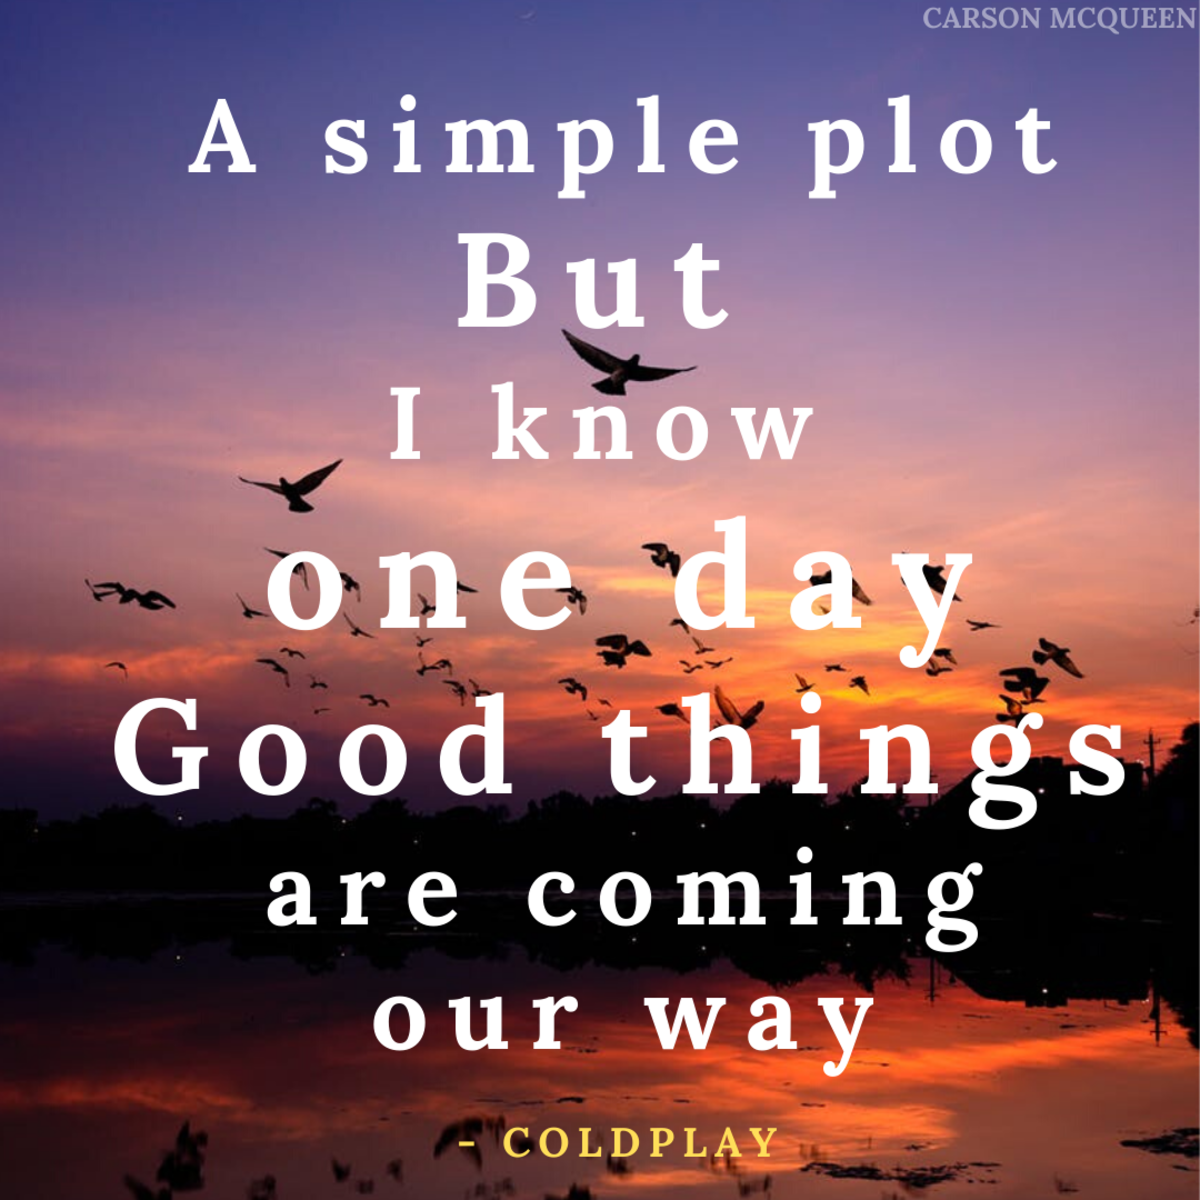 """A simple plot. But I know one day, good things are coming our way."" - Coldplay"